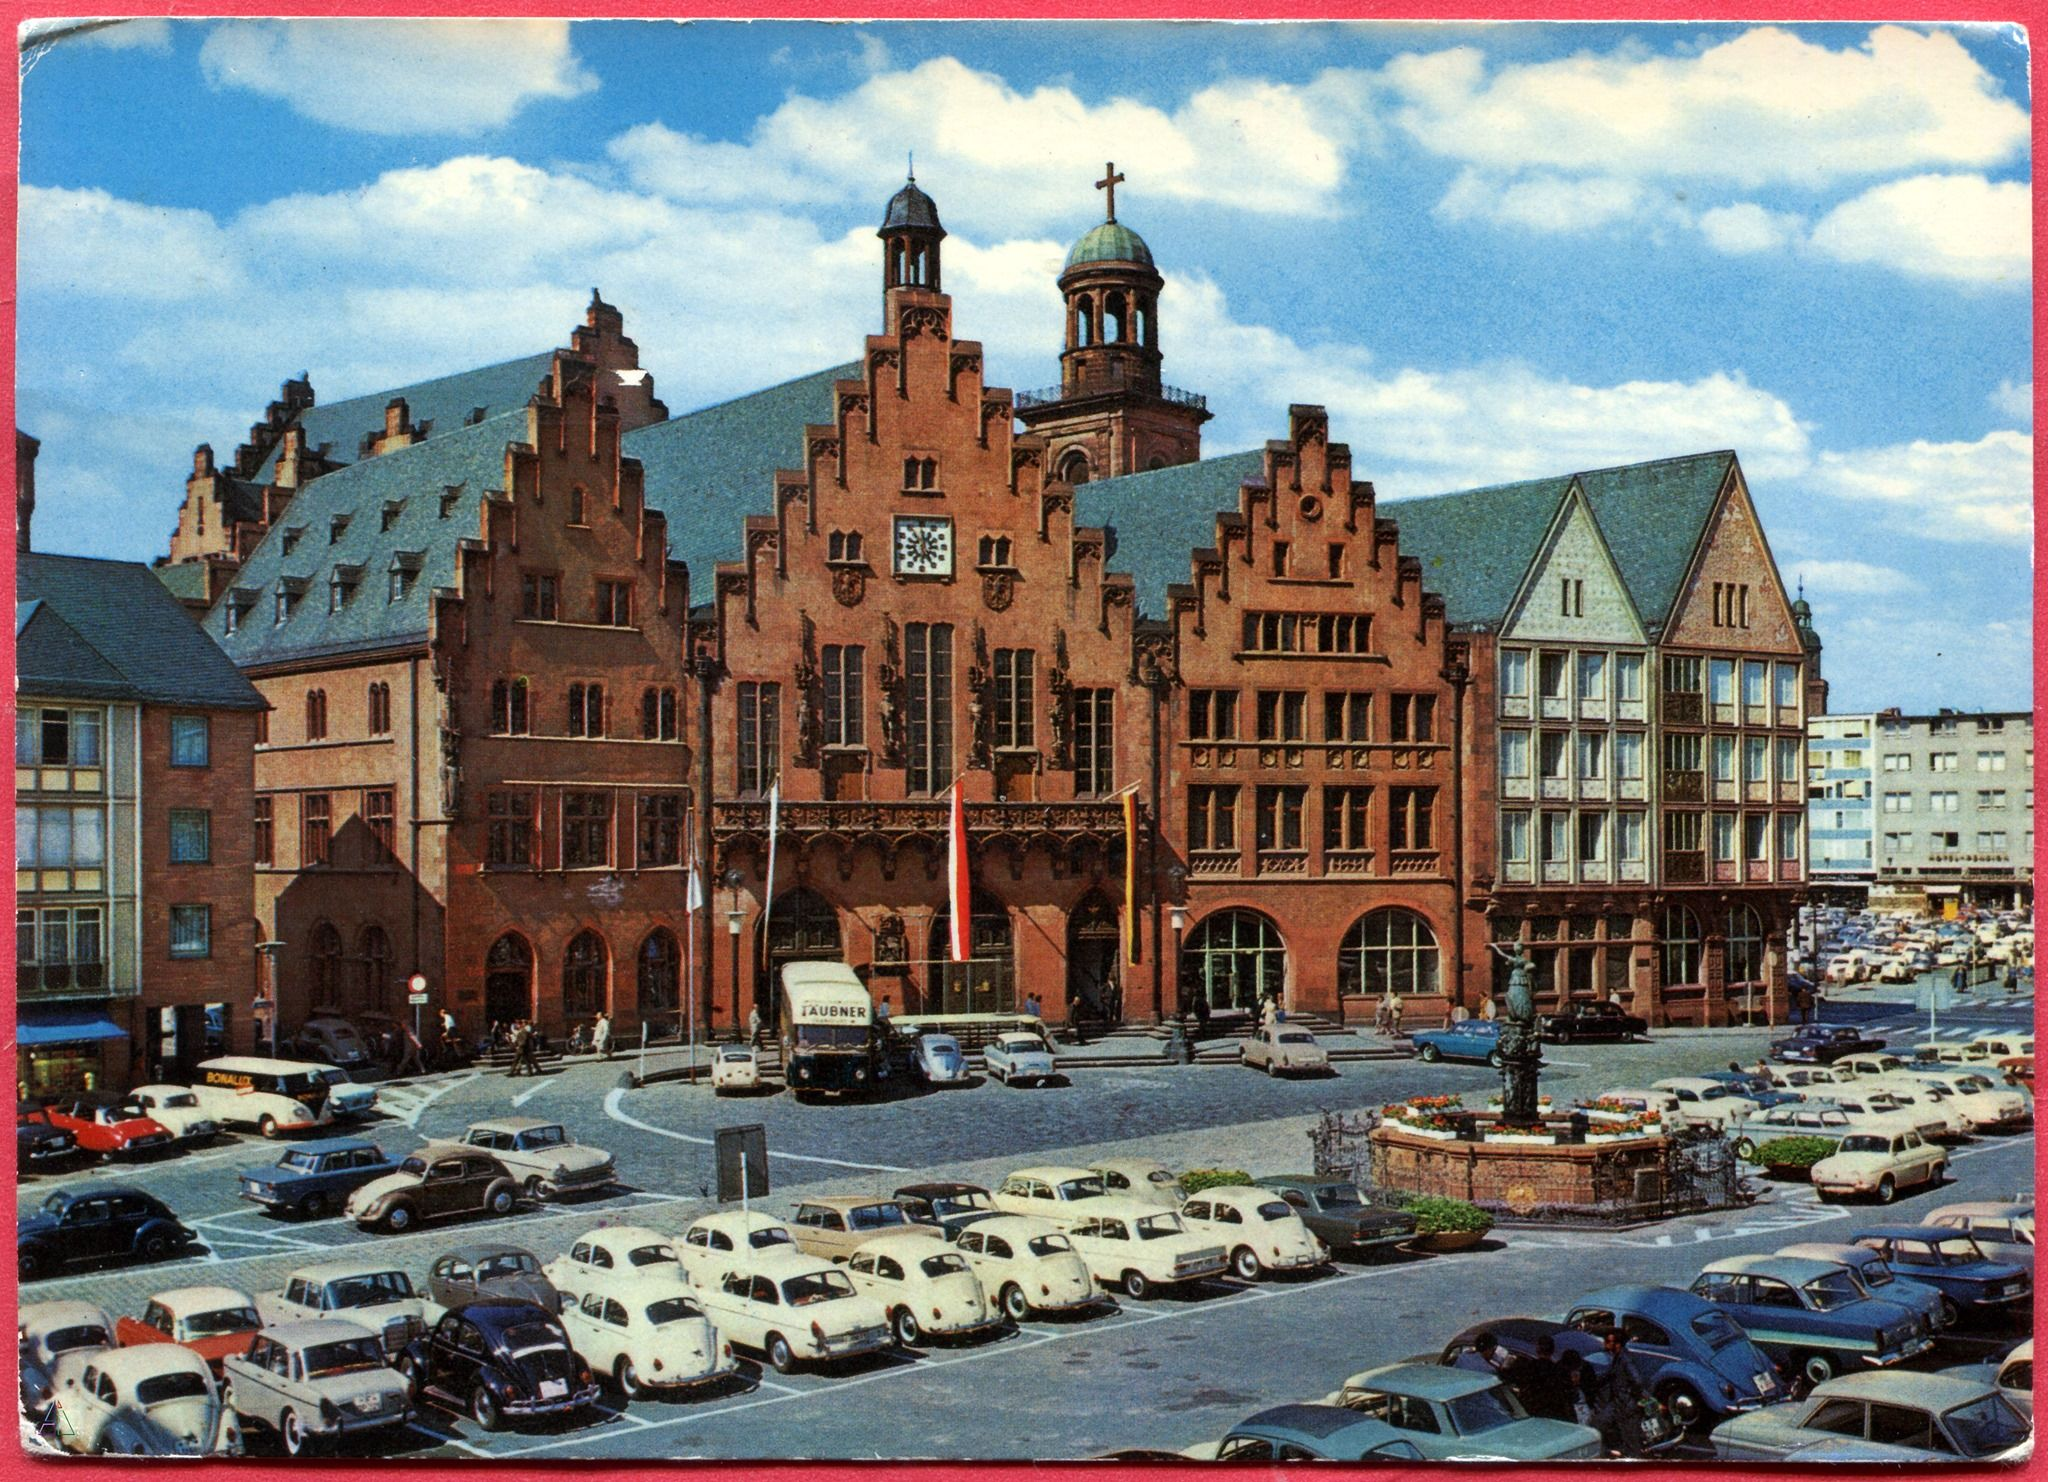 Frankfurt A M Romer Poststempel 2 10 1966 Best Places To Live Frankfurt Am Main Frankfurt